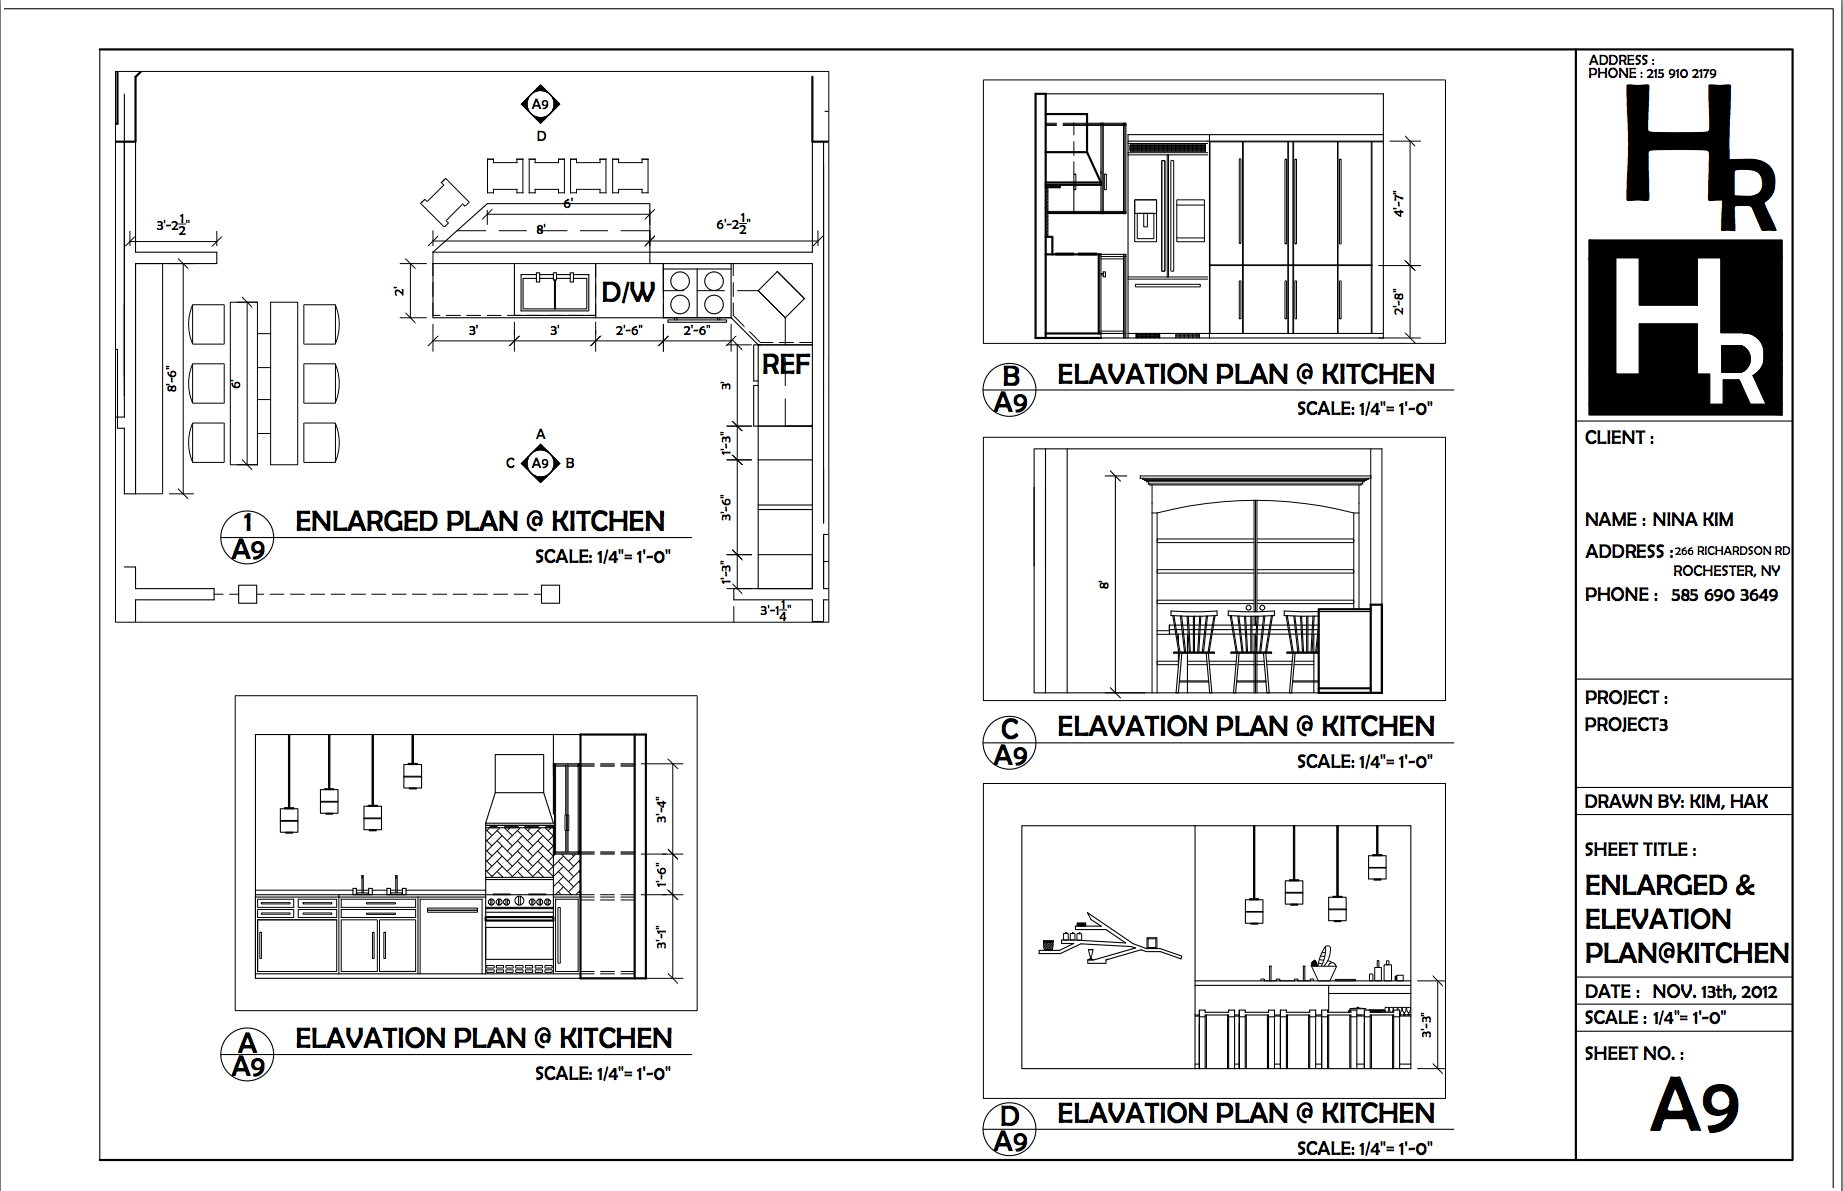 Kitchen enlarged and elevation plan